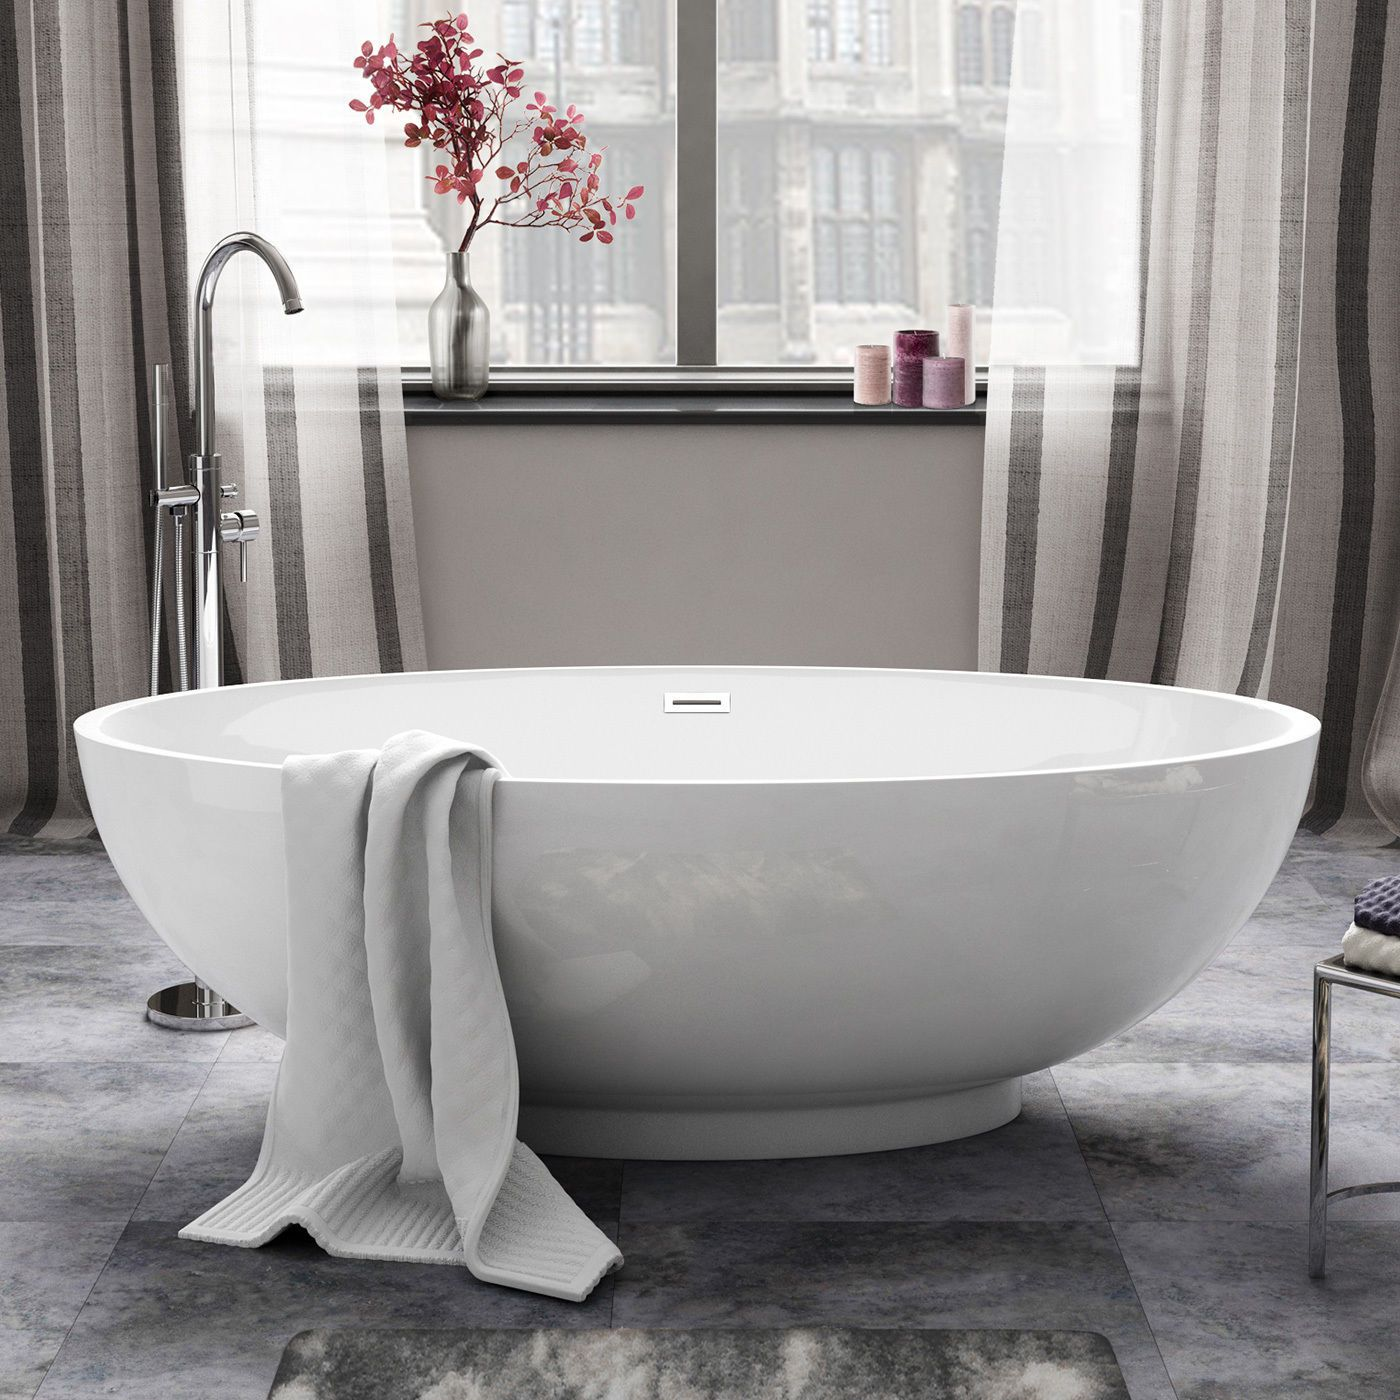 Aquasoak 1685mm modern oval double ended freestanding bath for Best freestanding tub material